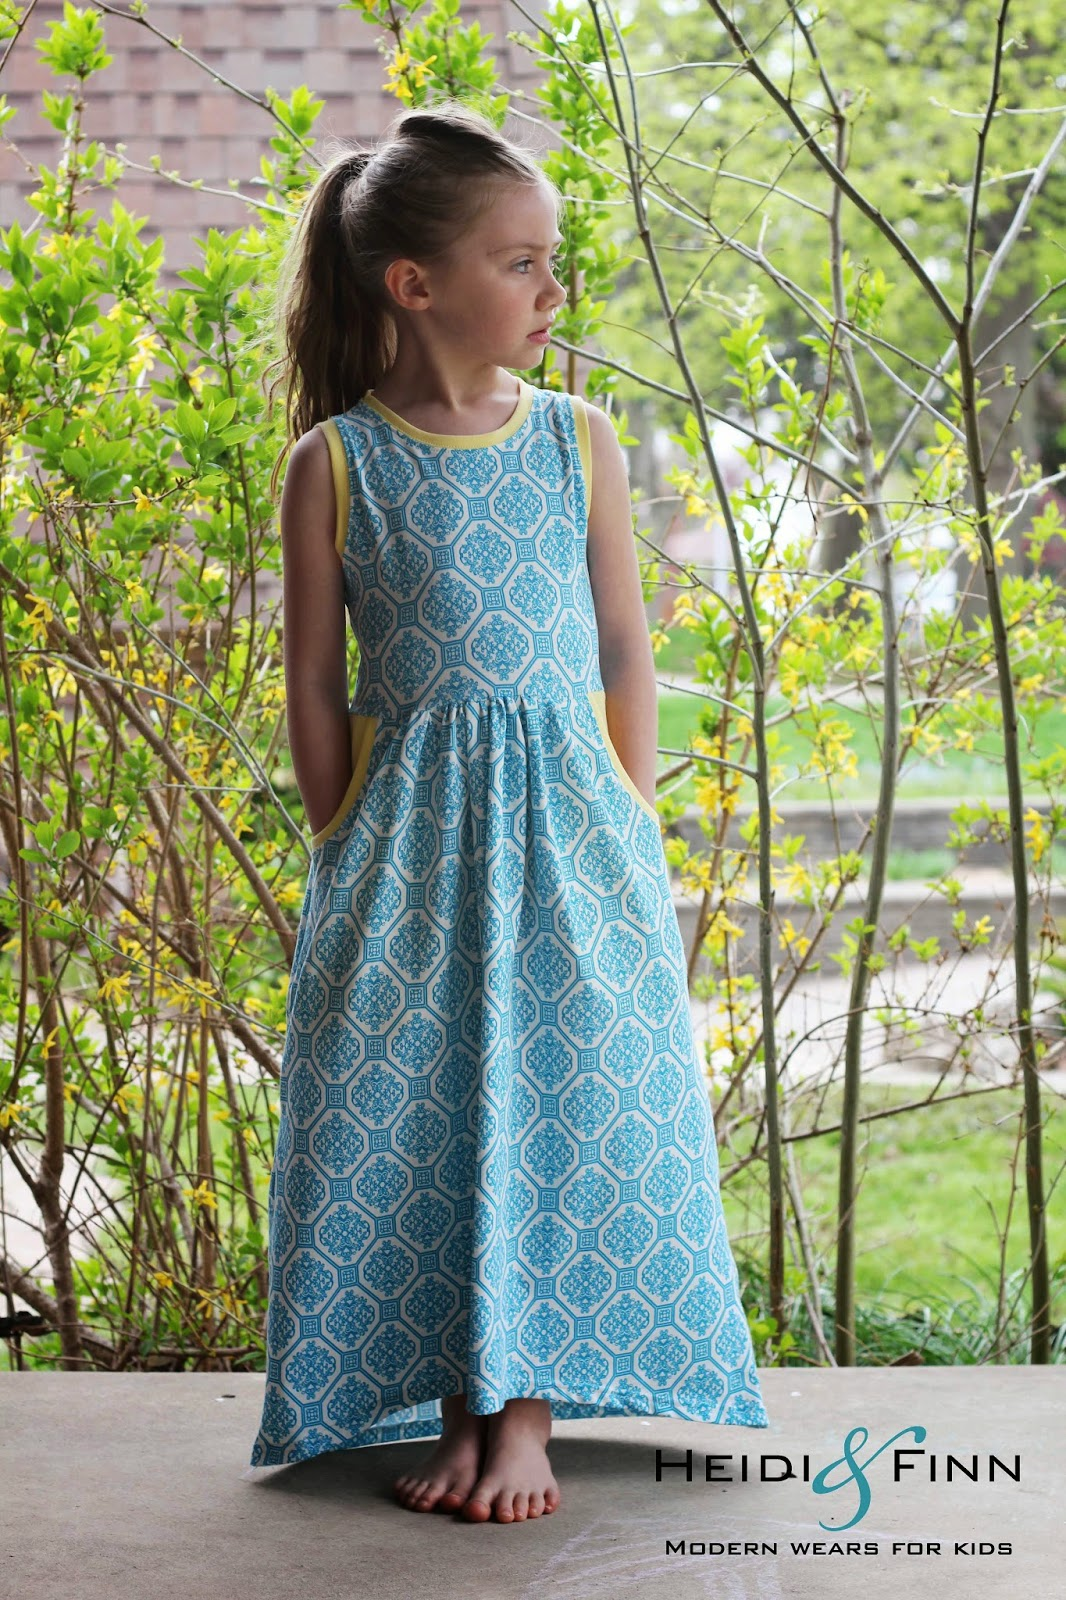 Easy knit dress pattern dress images easy knit dress pattern bankloansurffo Image collections